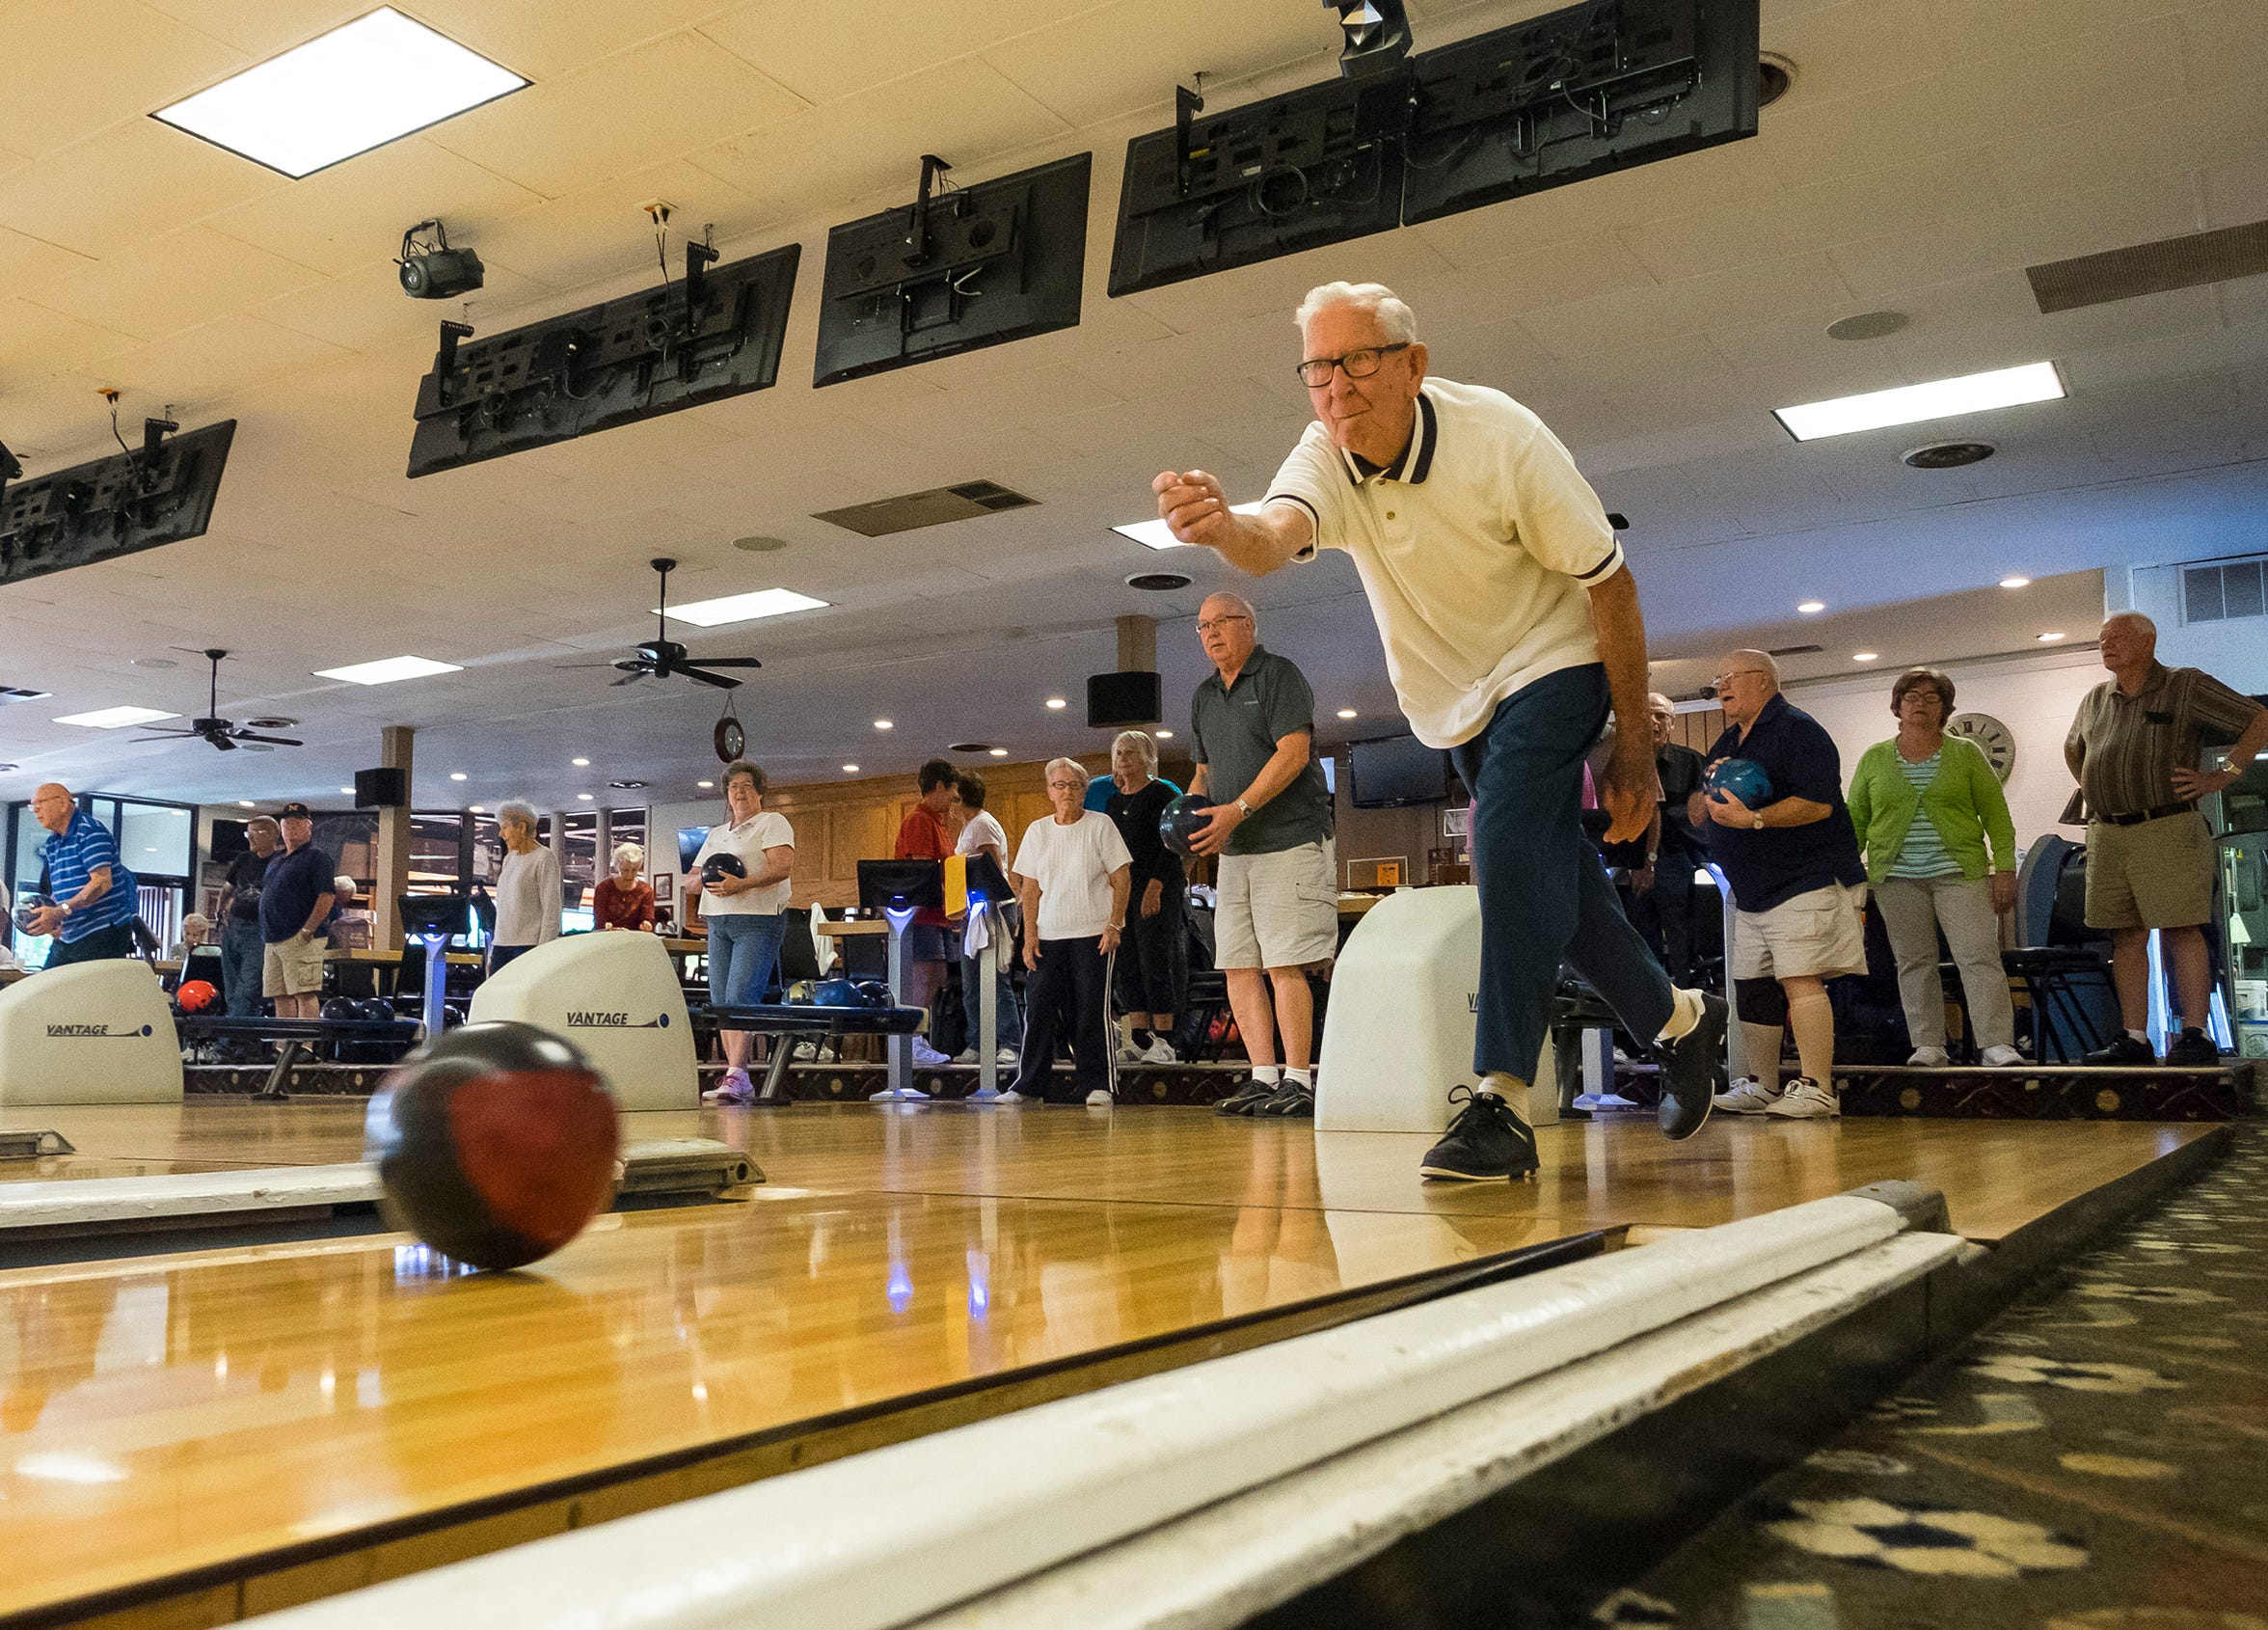 Bob Crorey, of China Township, rolls a bowling ball down one of the lanes at the Voyageur in St. Clair Wednesday, Sept. 26, 2018 while warming up for a seniors bowling league meet.